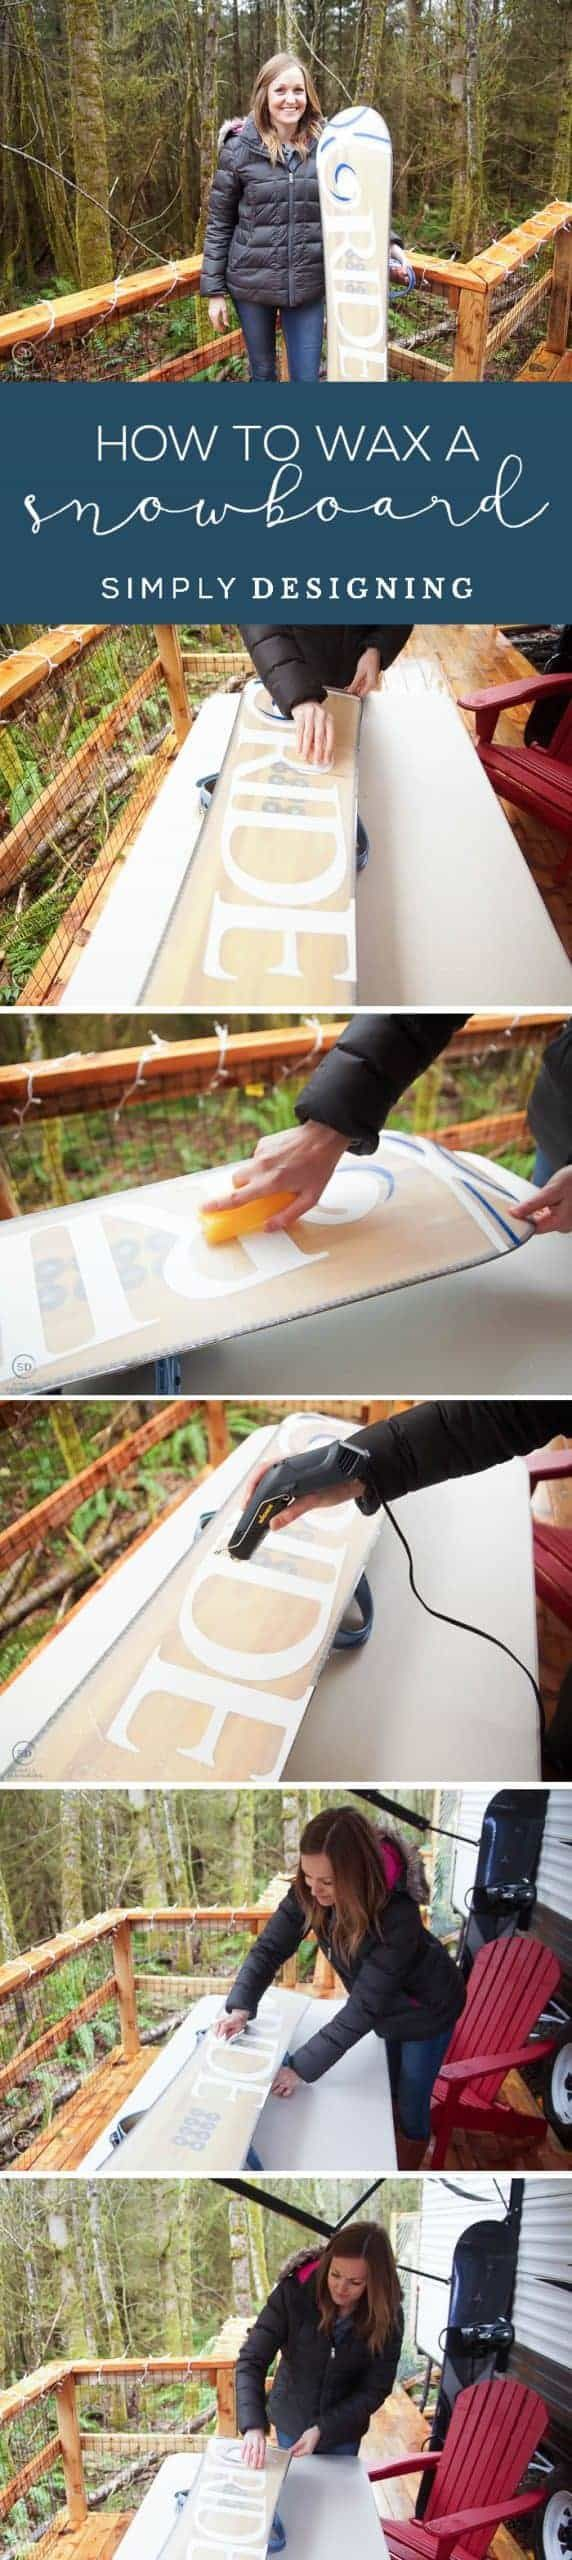 How To Wax A Snowboard Simply Designing With Ashley Snowboard Diy Vanity Lights Rub And Buff